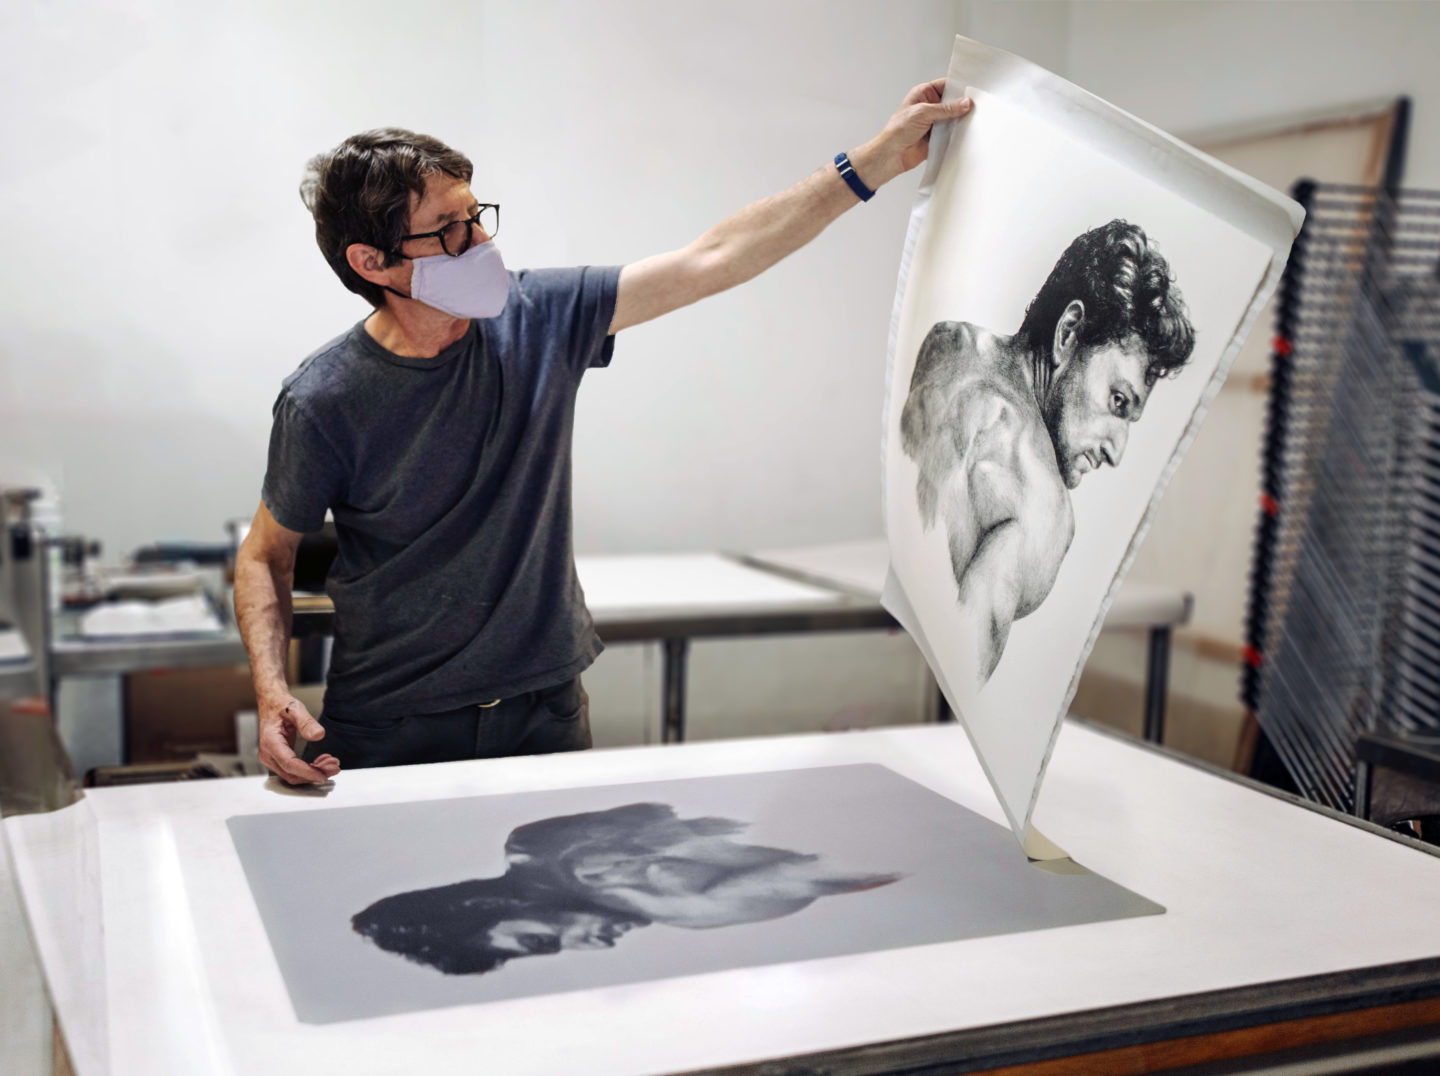 Master Printer, Brian Shure, with a limited edition Simon Haas print in 2020.